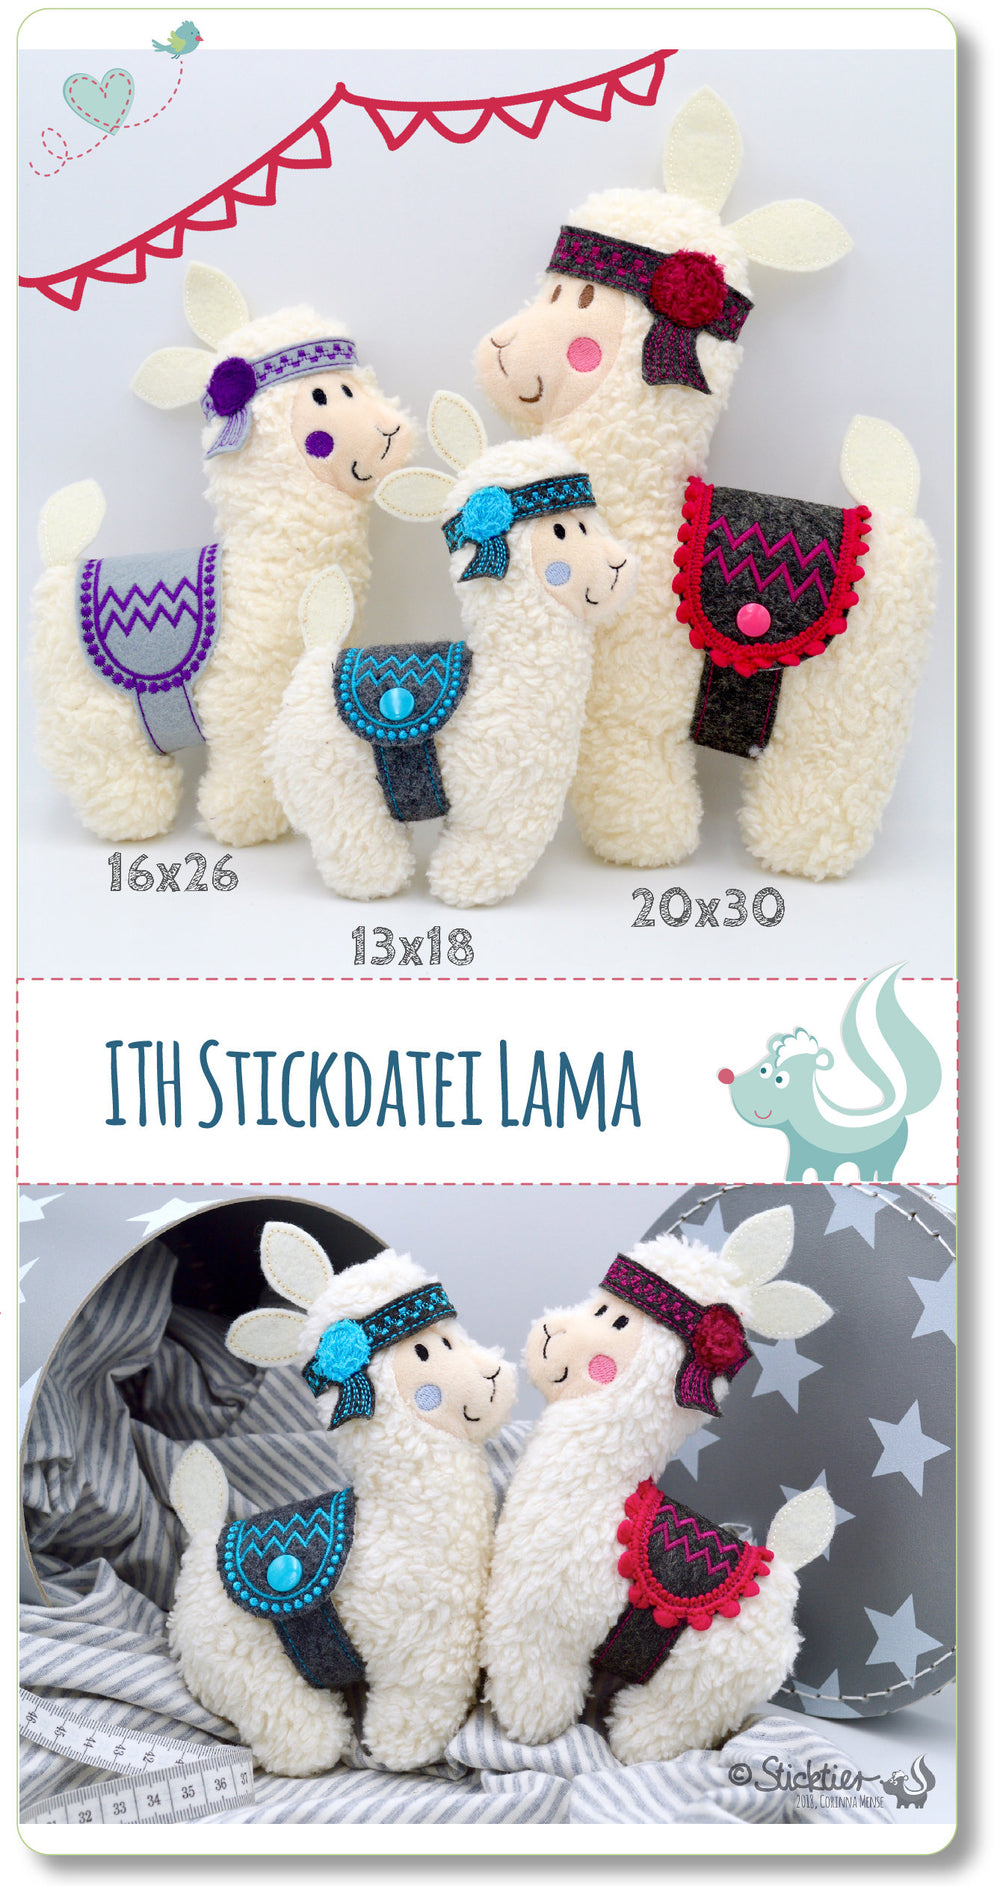 Stickdatei 3er Set ITH Lama 13x18,16x26, 20x30 cm Stickrahmen -Download-